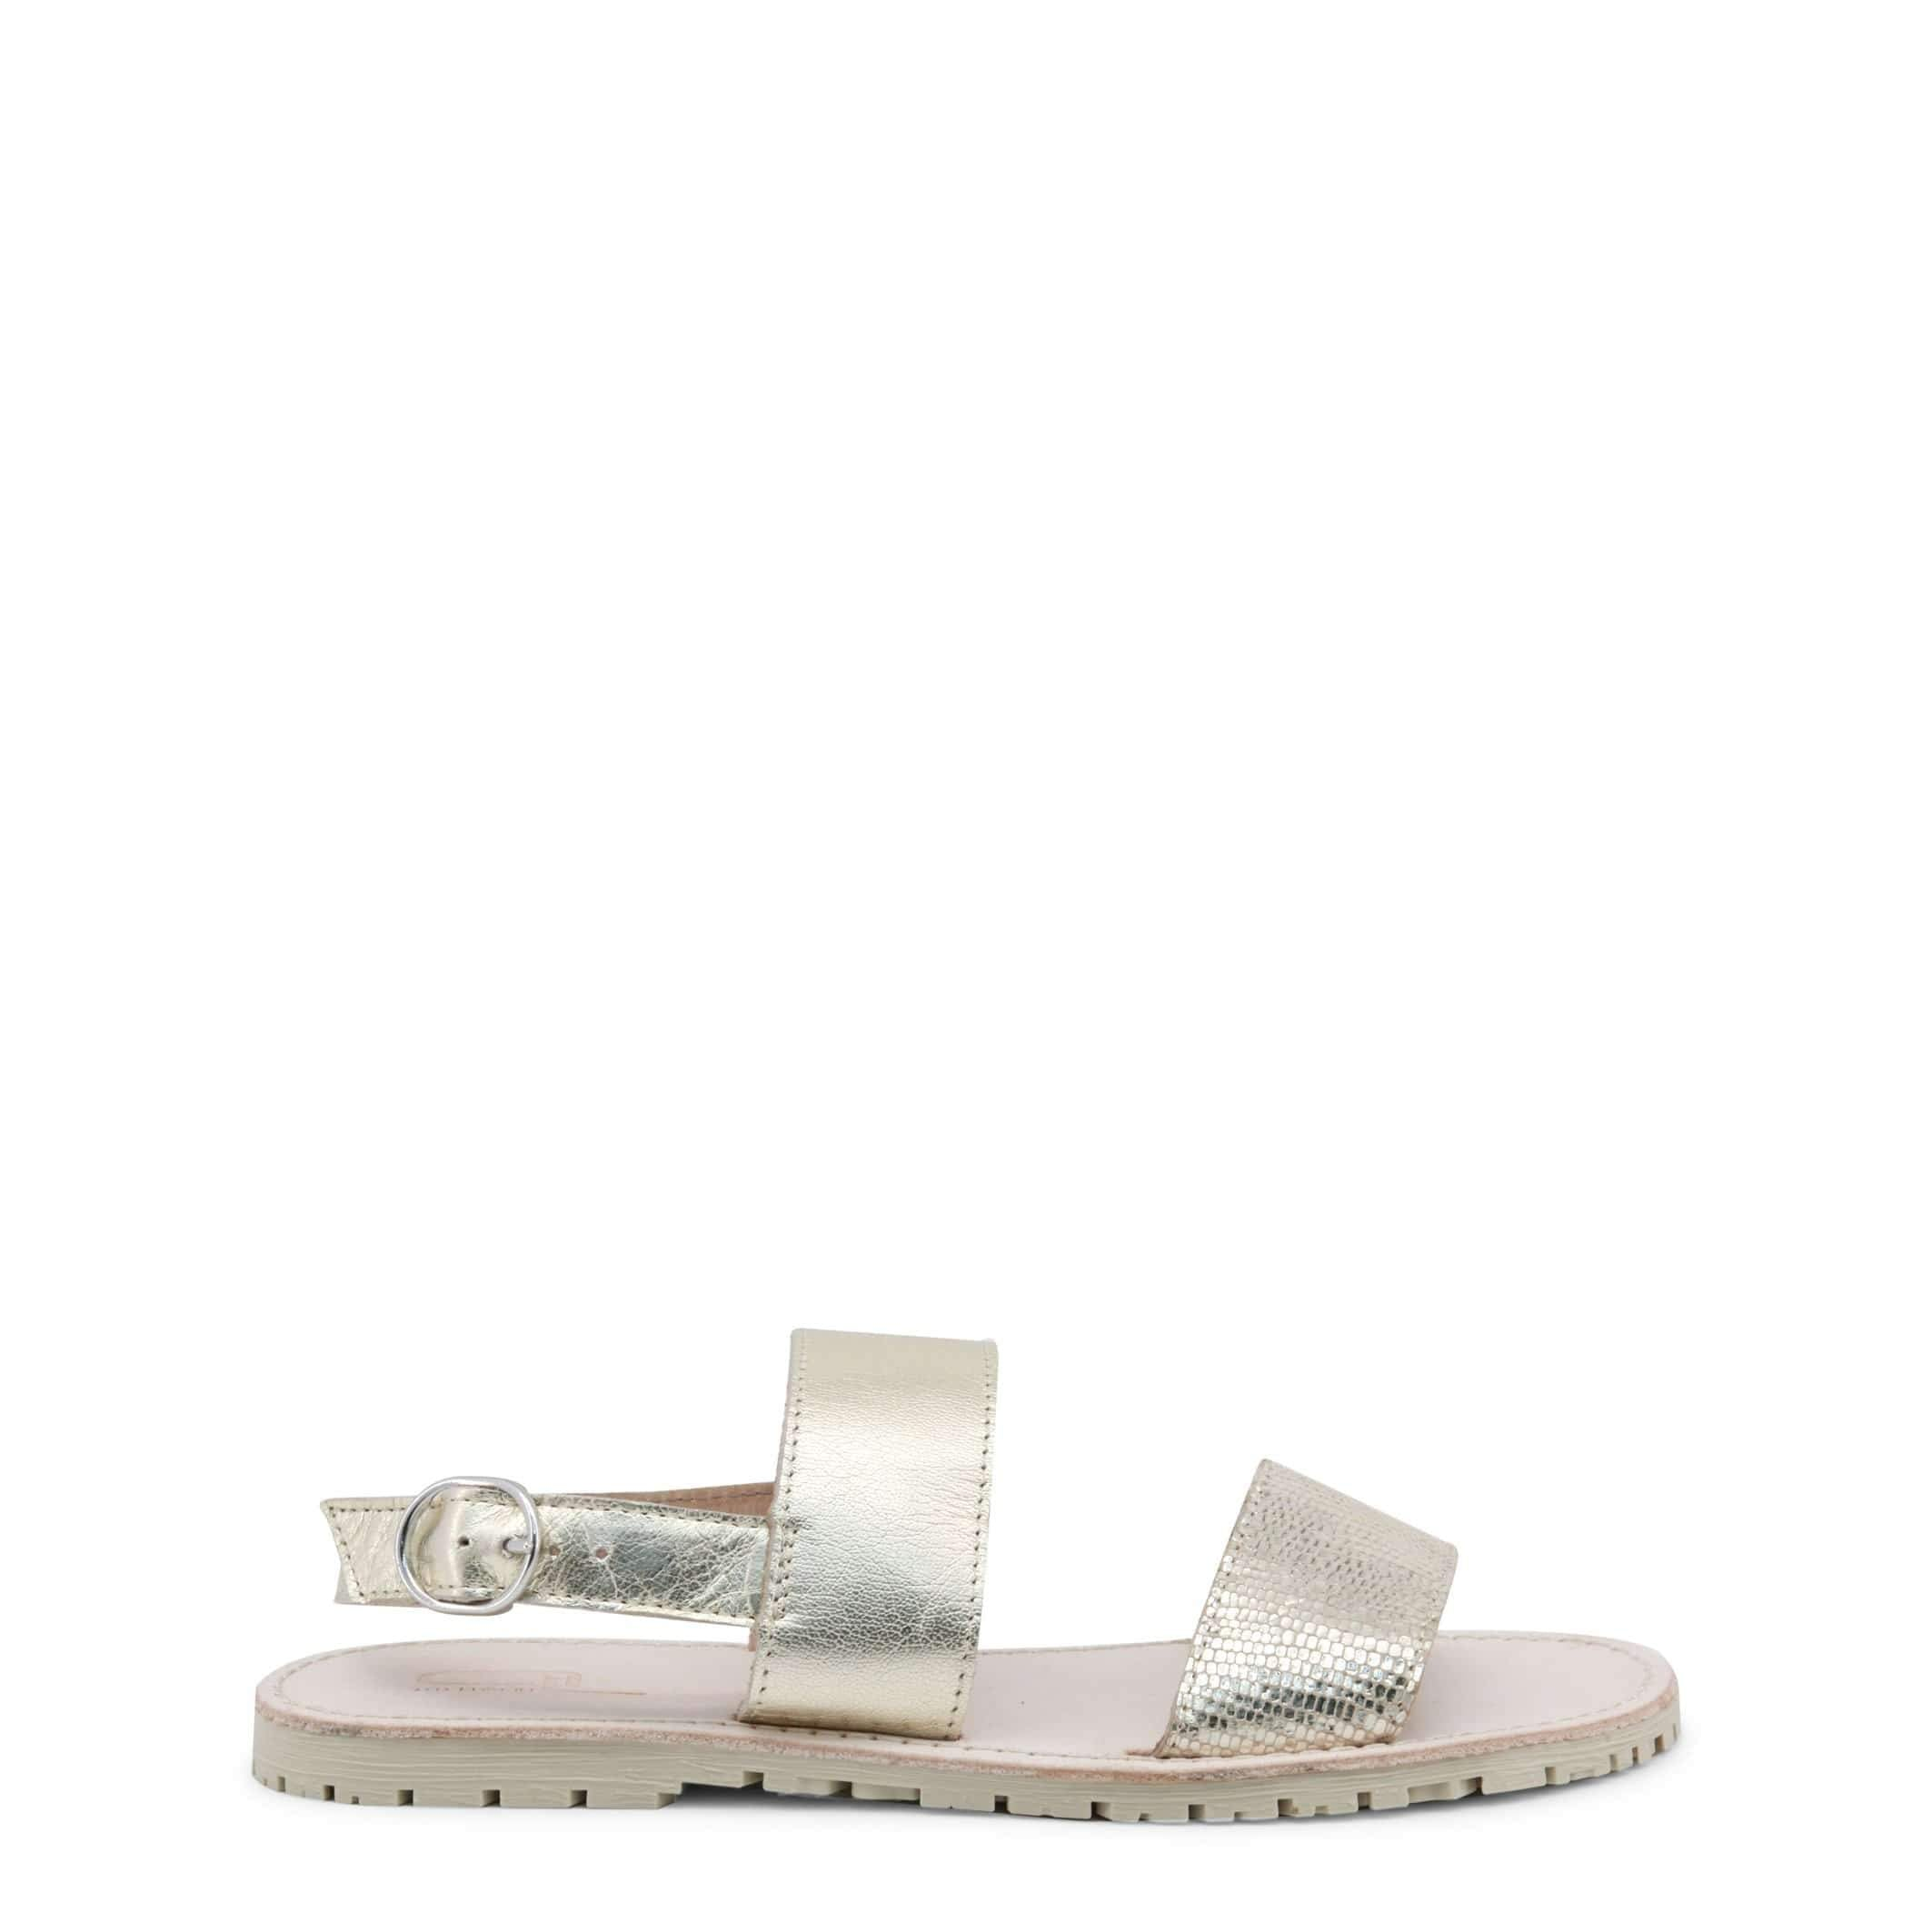 Ana Lublin Shoes Sandals yellow / EU 36 Ana Lublin - FILIPA